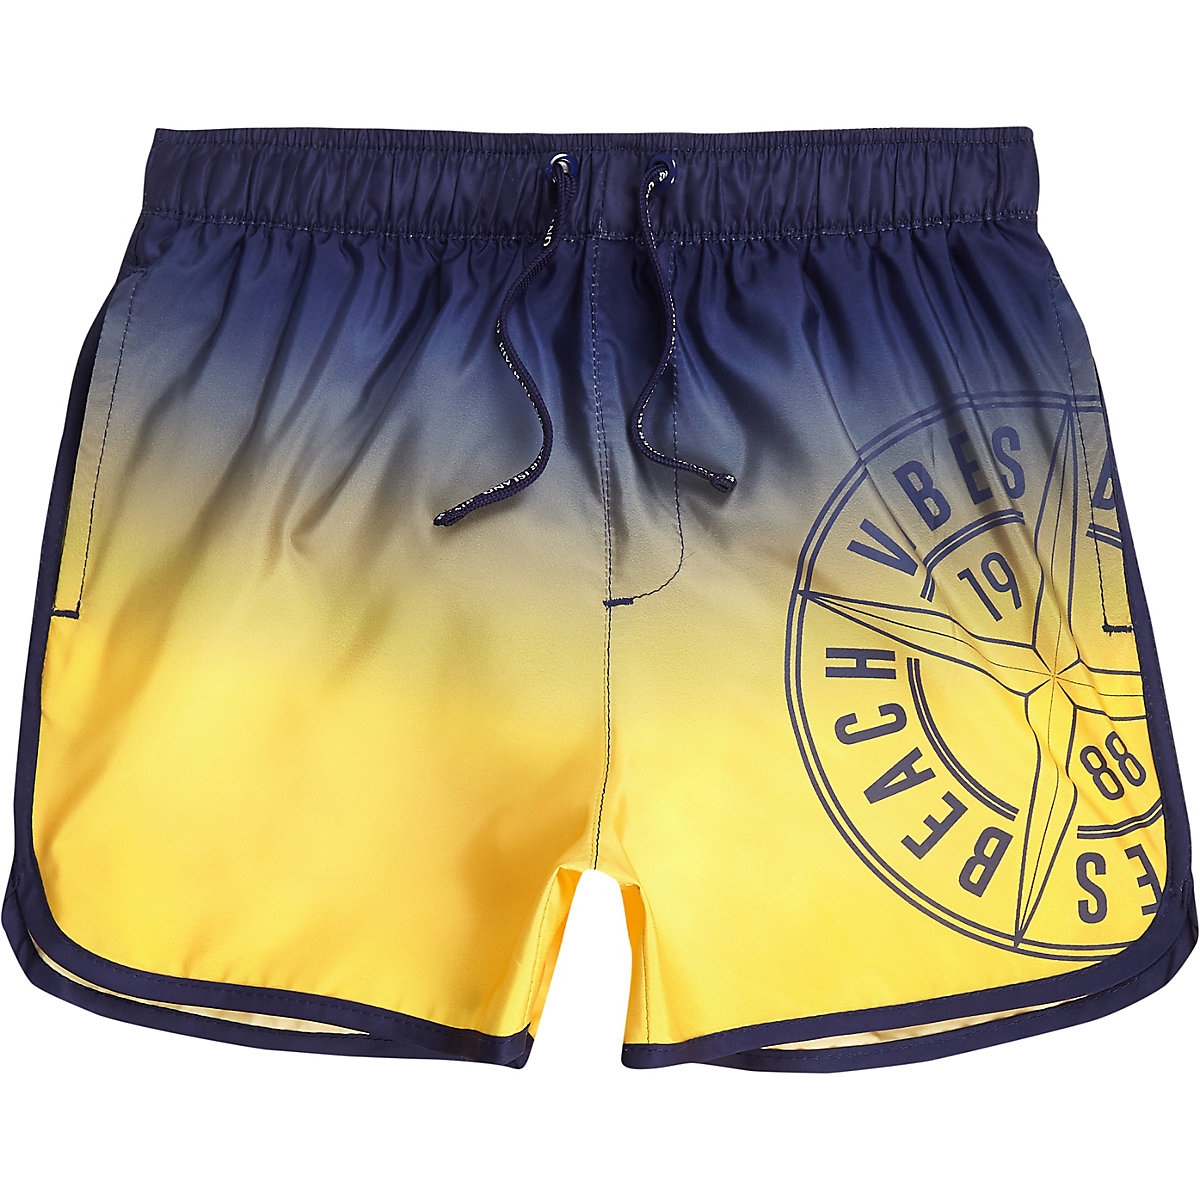 Boys ombre runner swim shorts